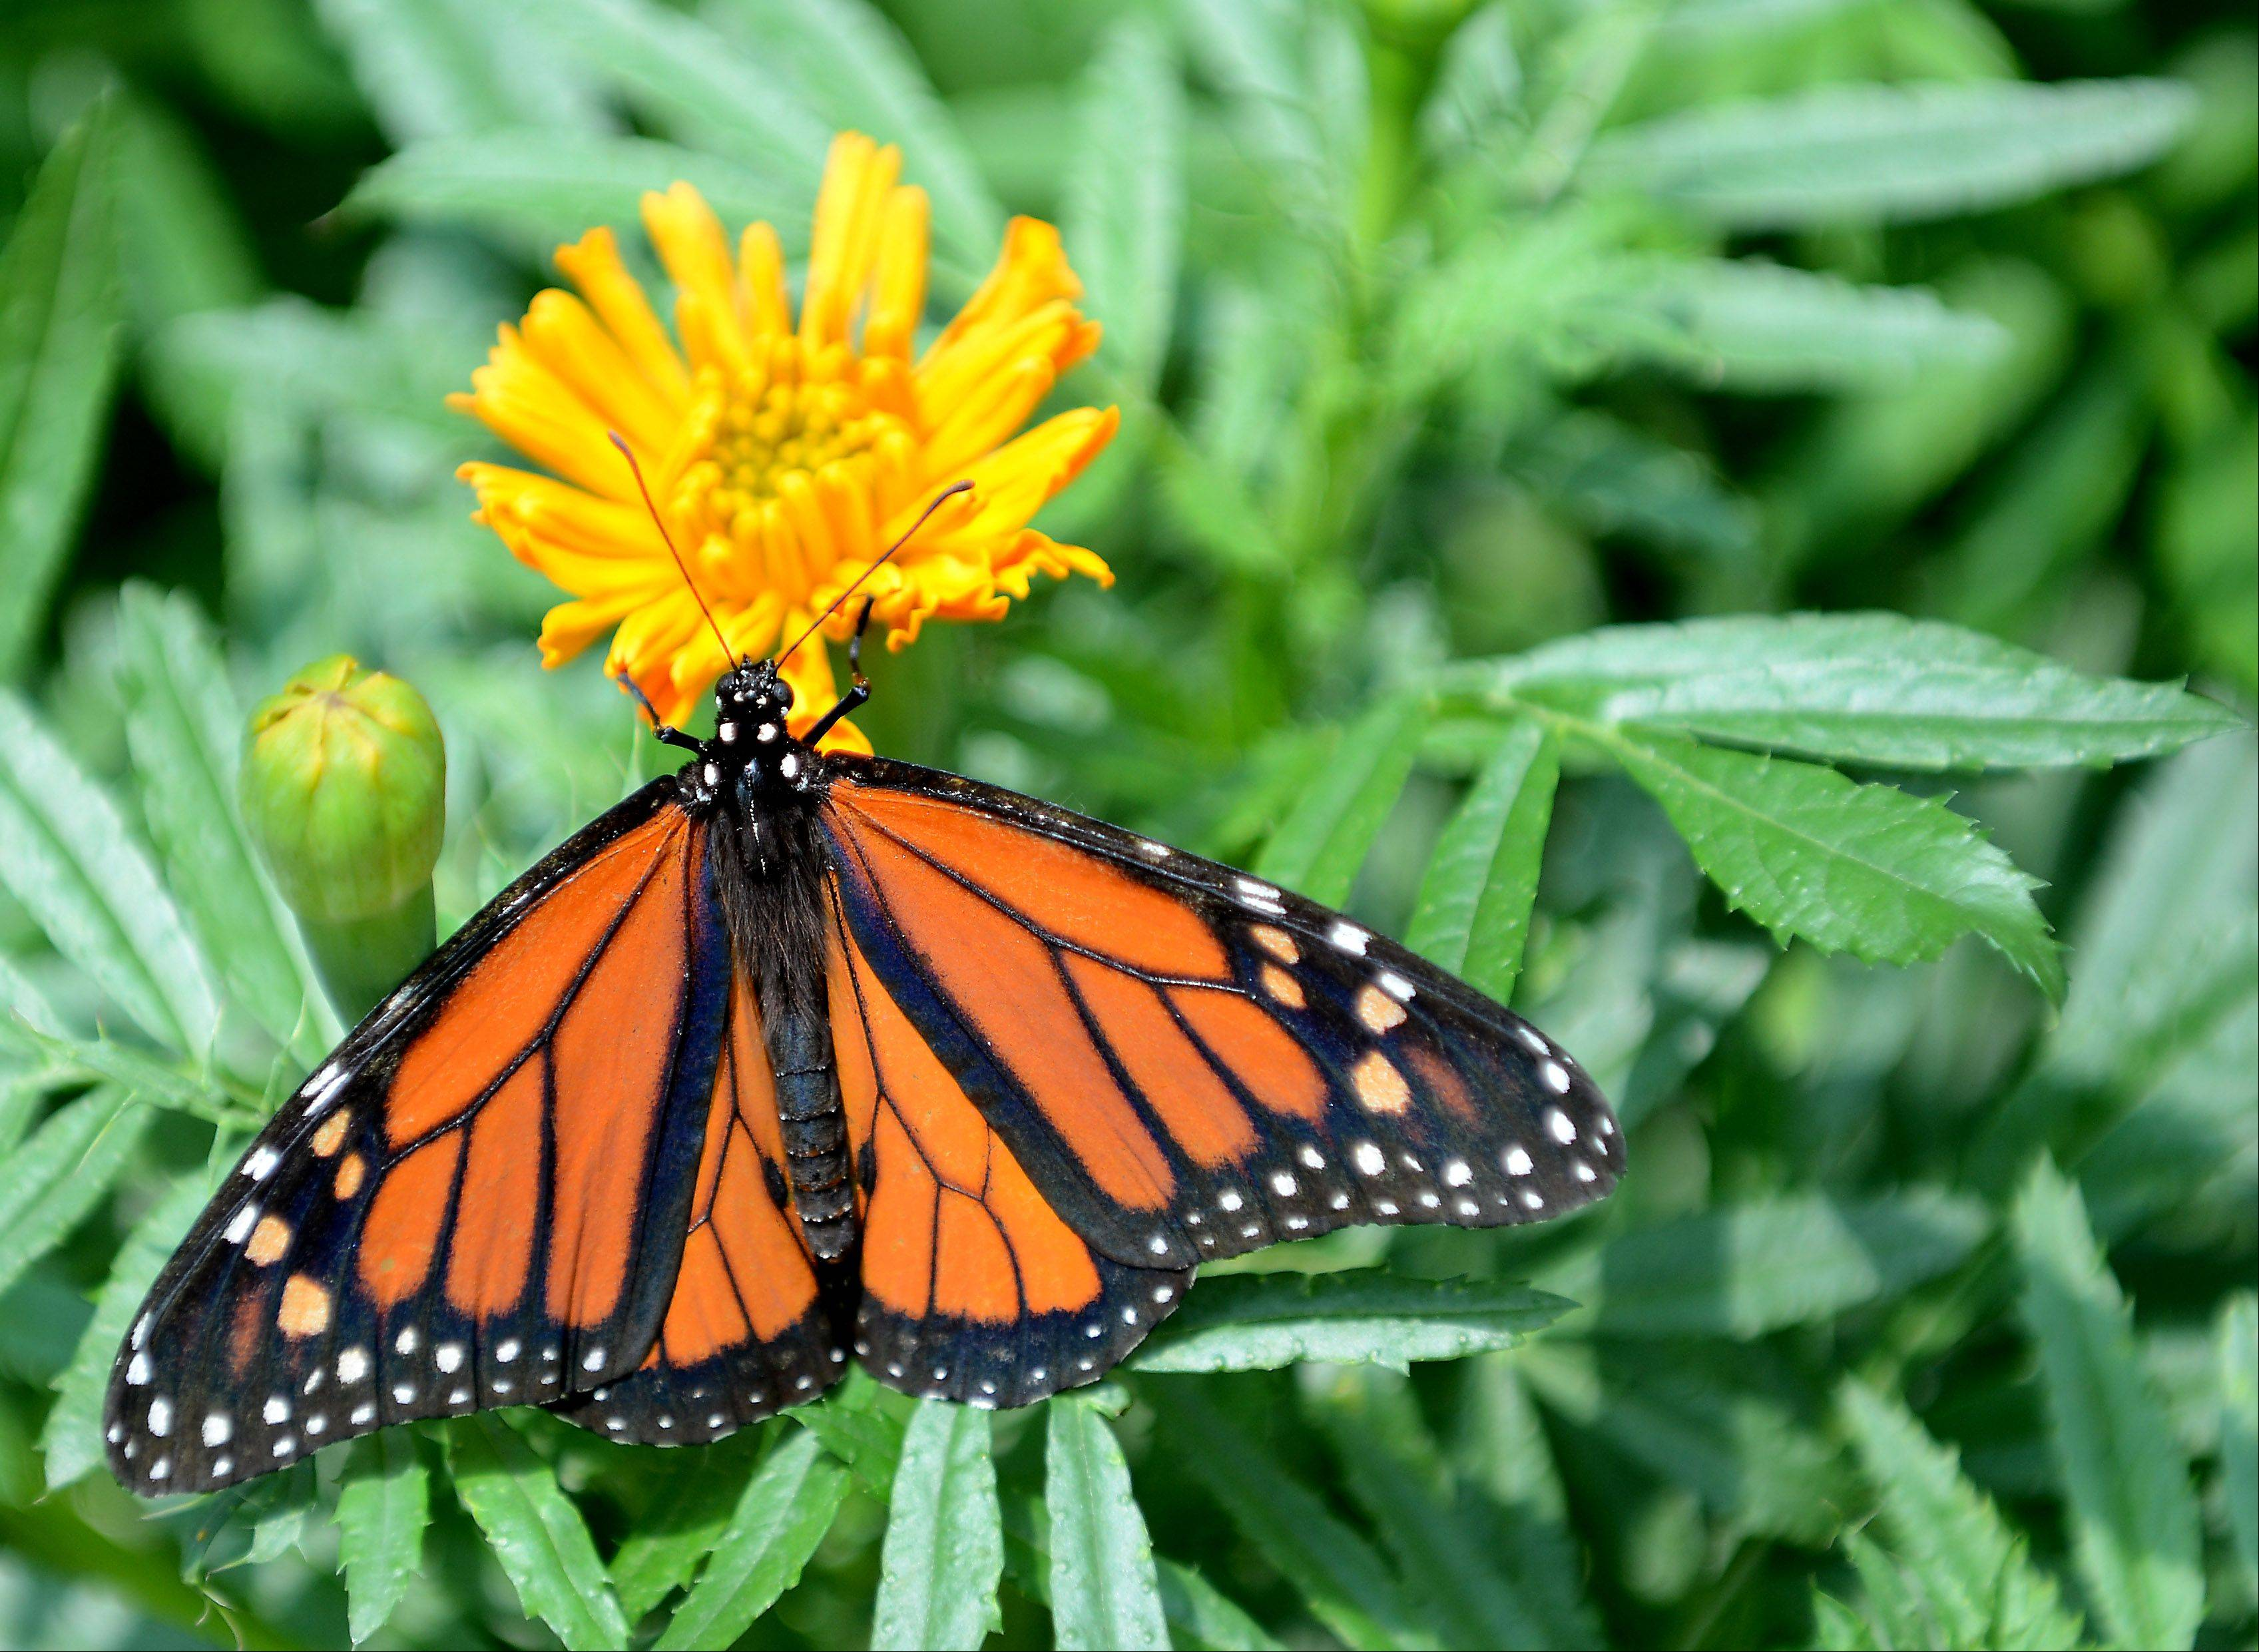 A monarch butterfly soaks up the sun and nectar at the Peck Farm Park Butterfly House in Geneva.